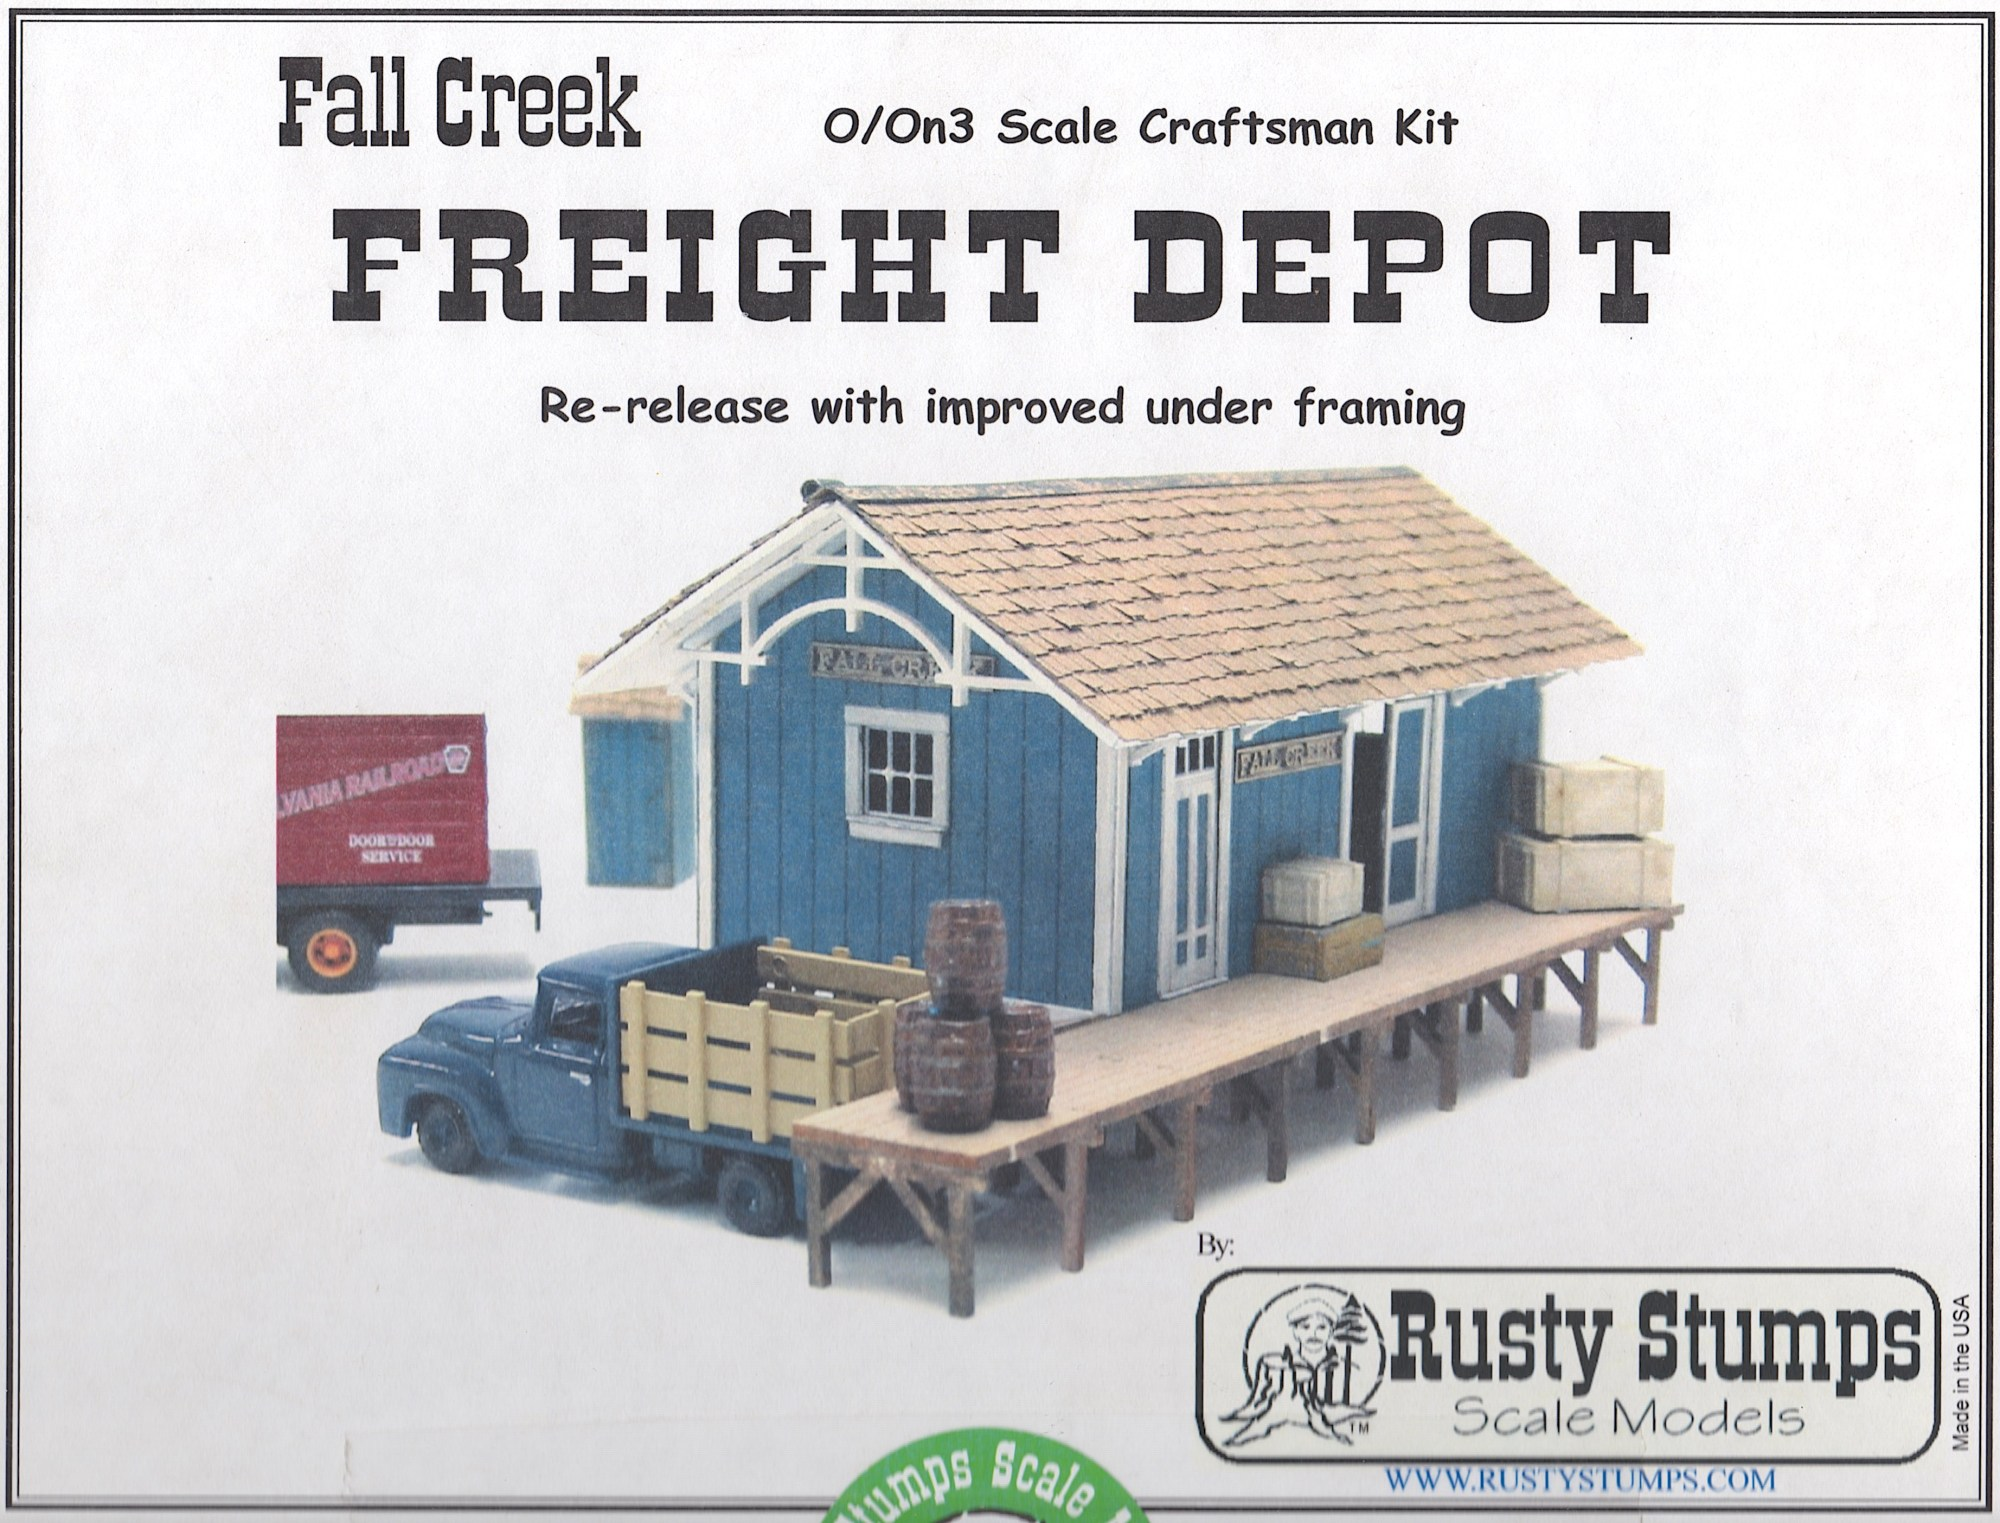 hight resolution of some time ago i bought this rusty stumps kit because i liked the look and the size of it i had already built a passenger freight depot for silverton that